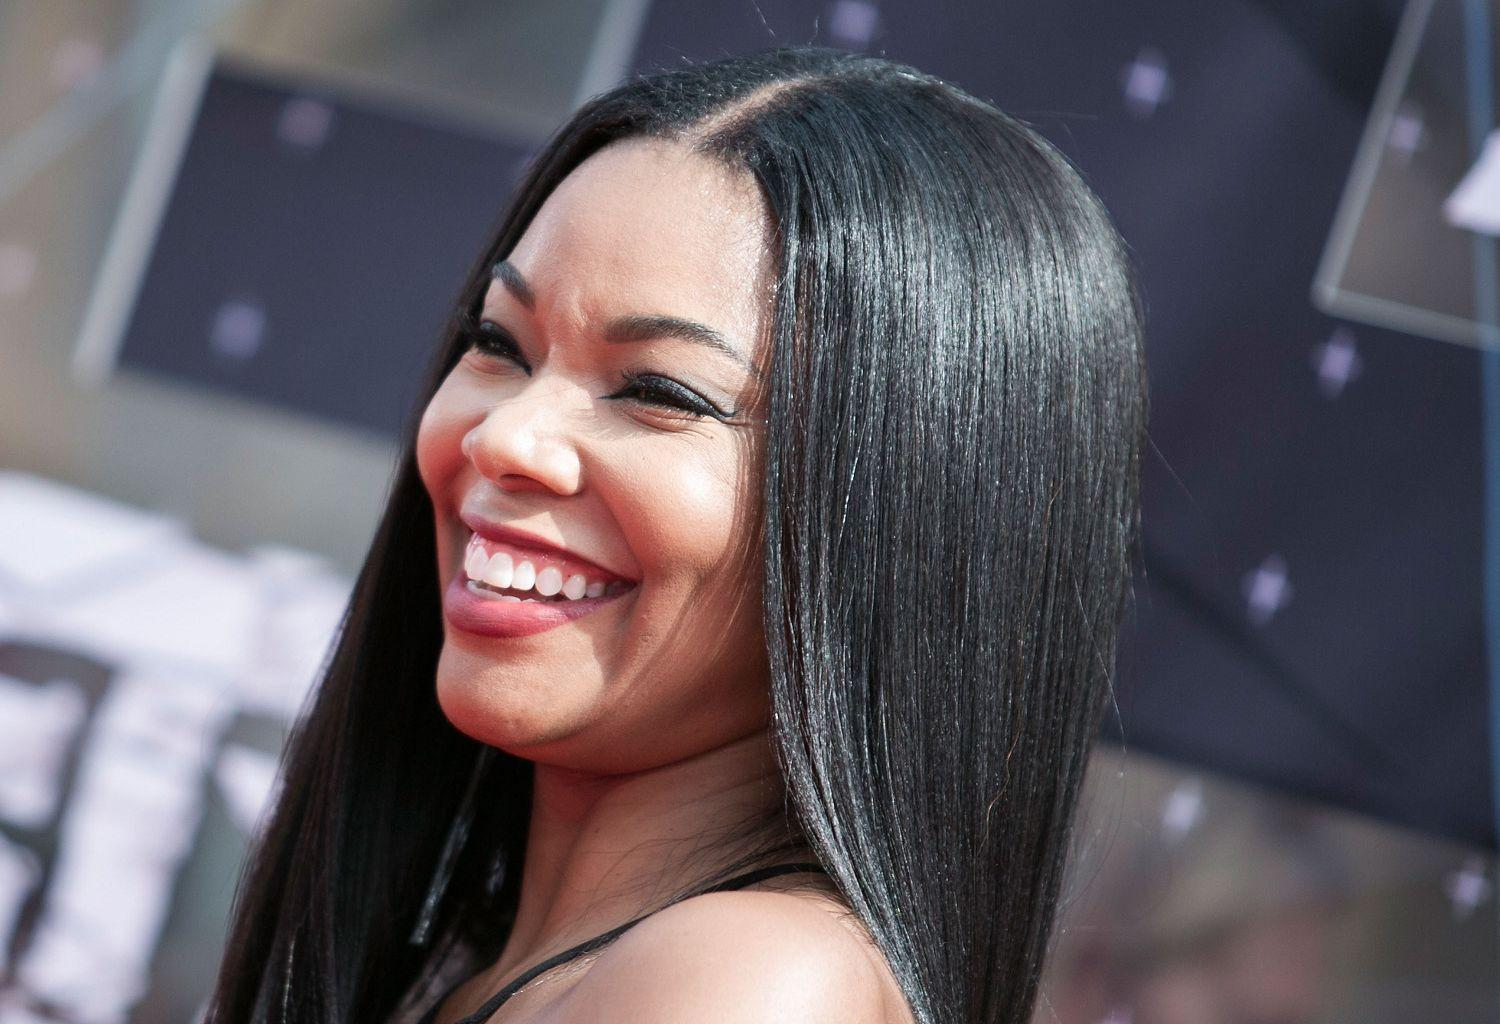 Gabrielle Union Shares New Pics Featuring Her Daughter - Fans Are In Love With Kaavia James